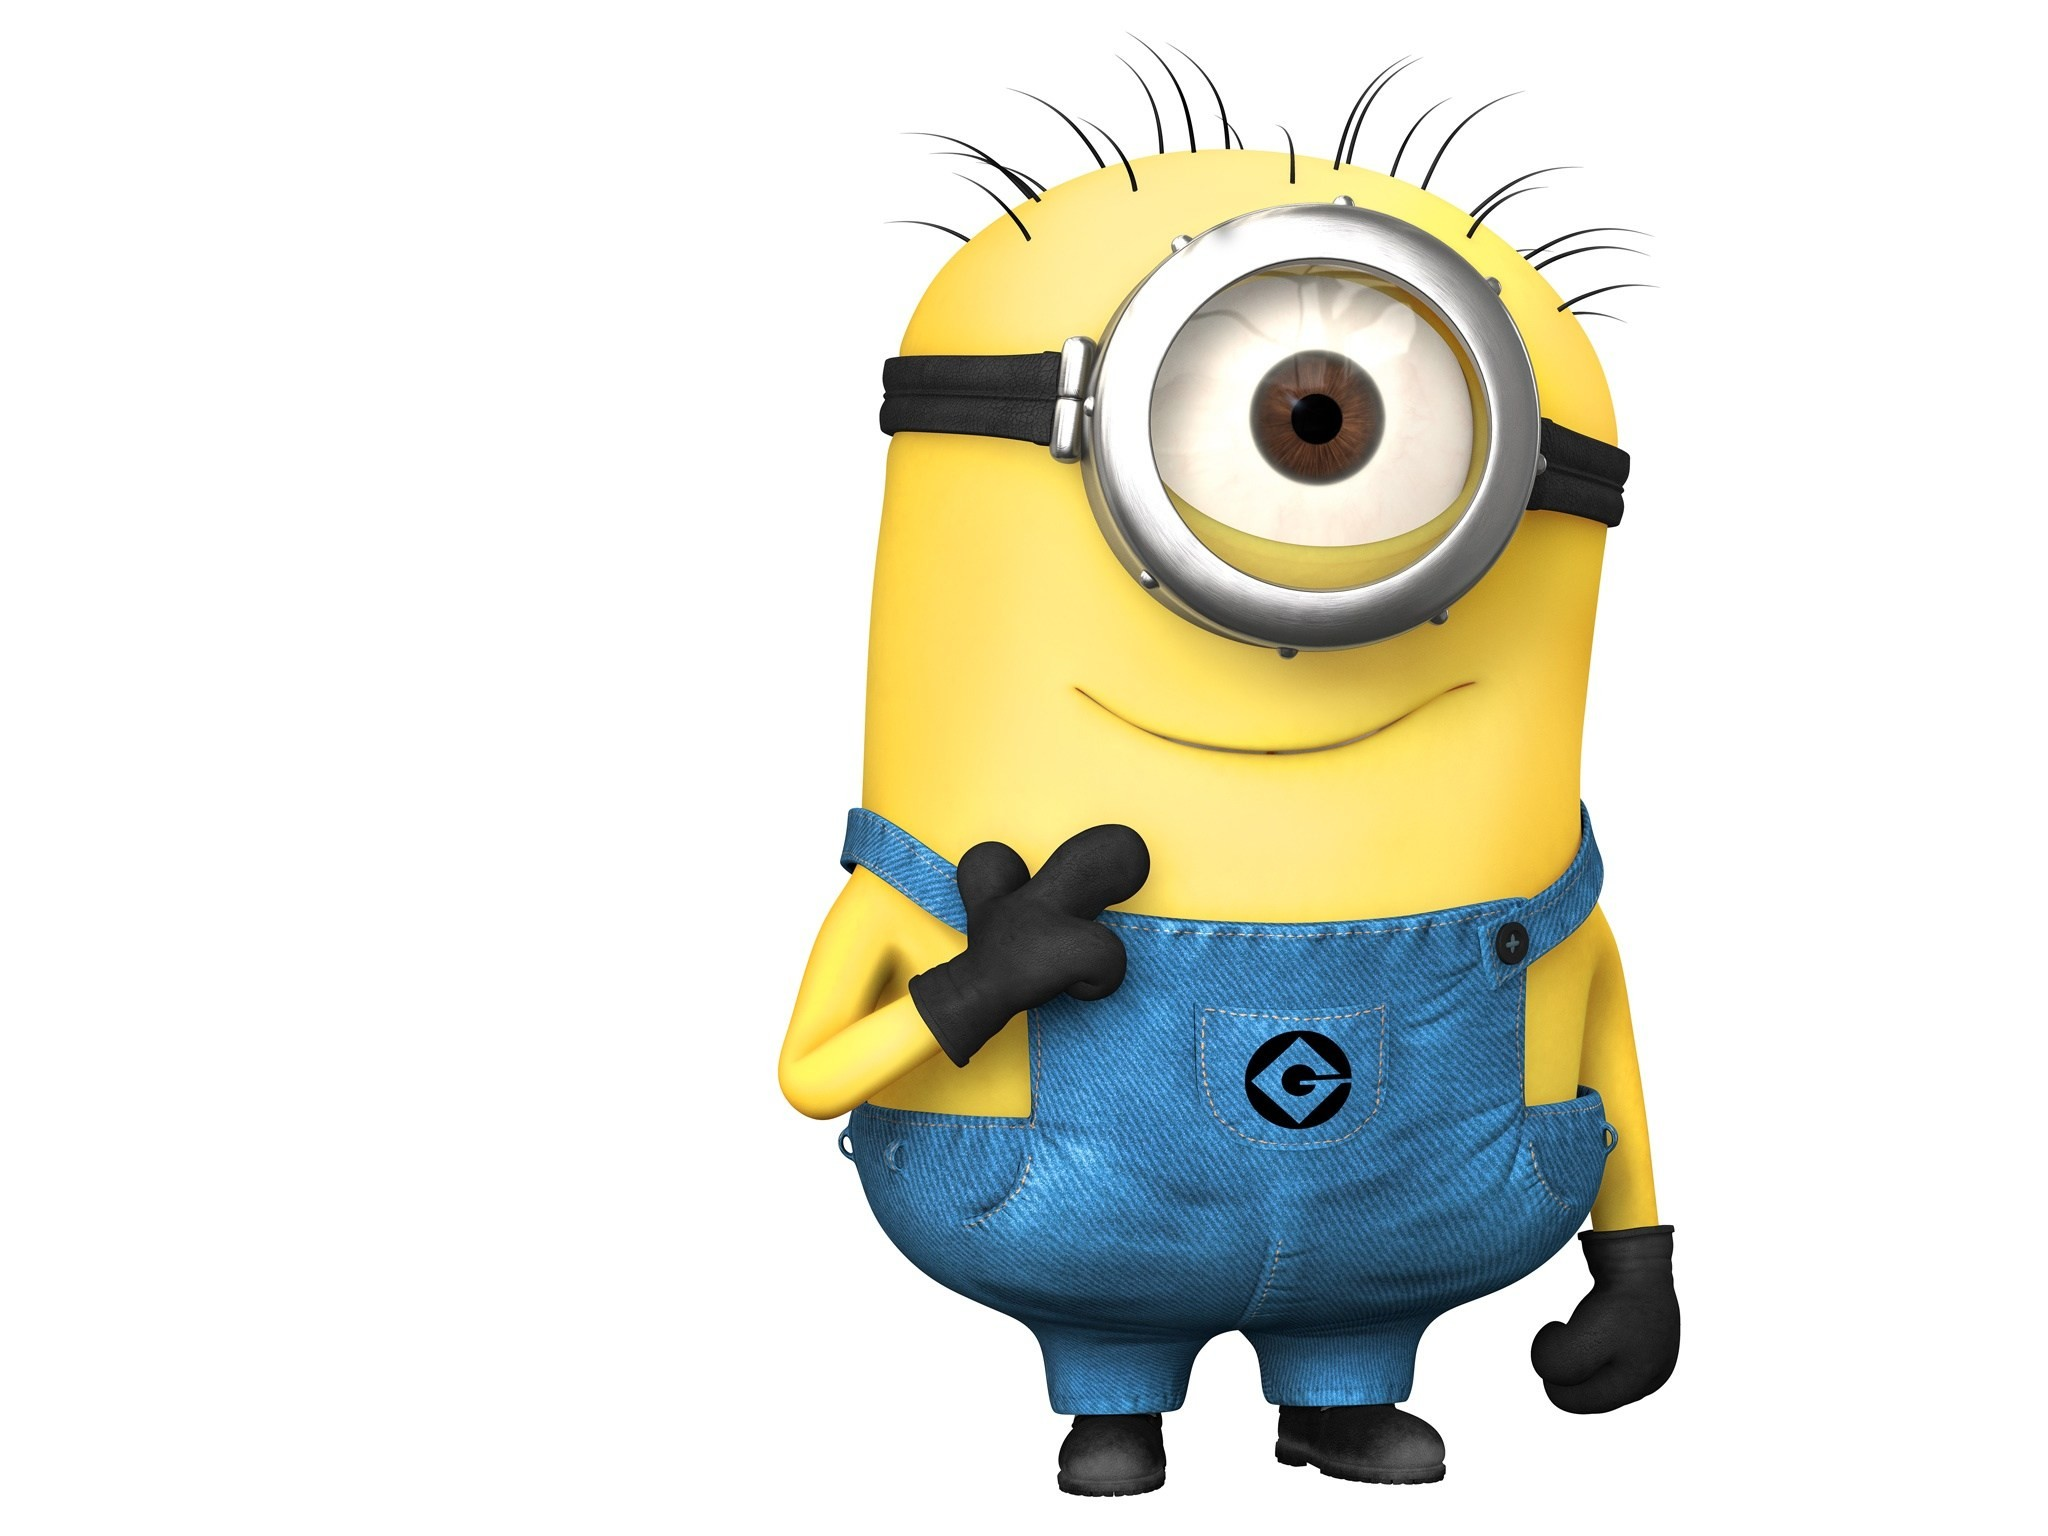 2048x1536 5194-minion-hd-wallpapers-14